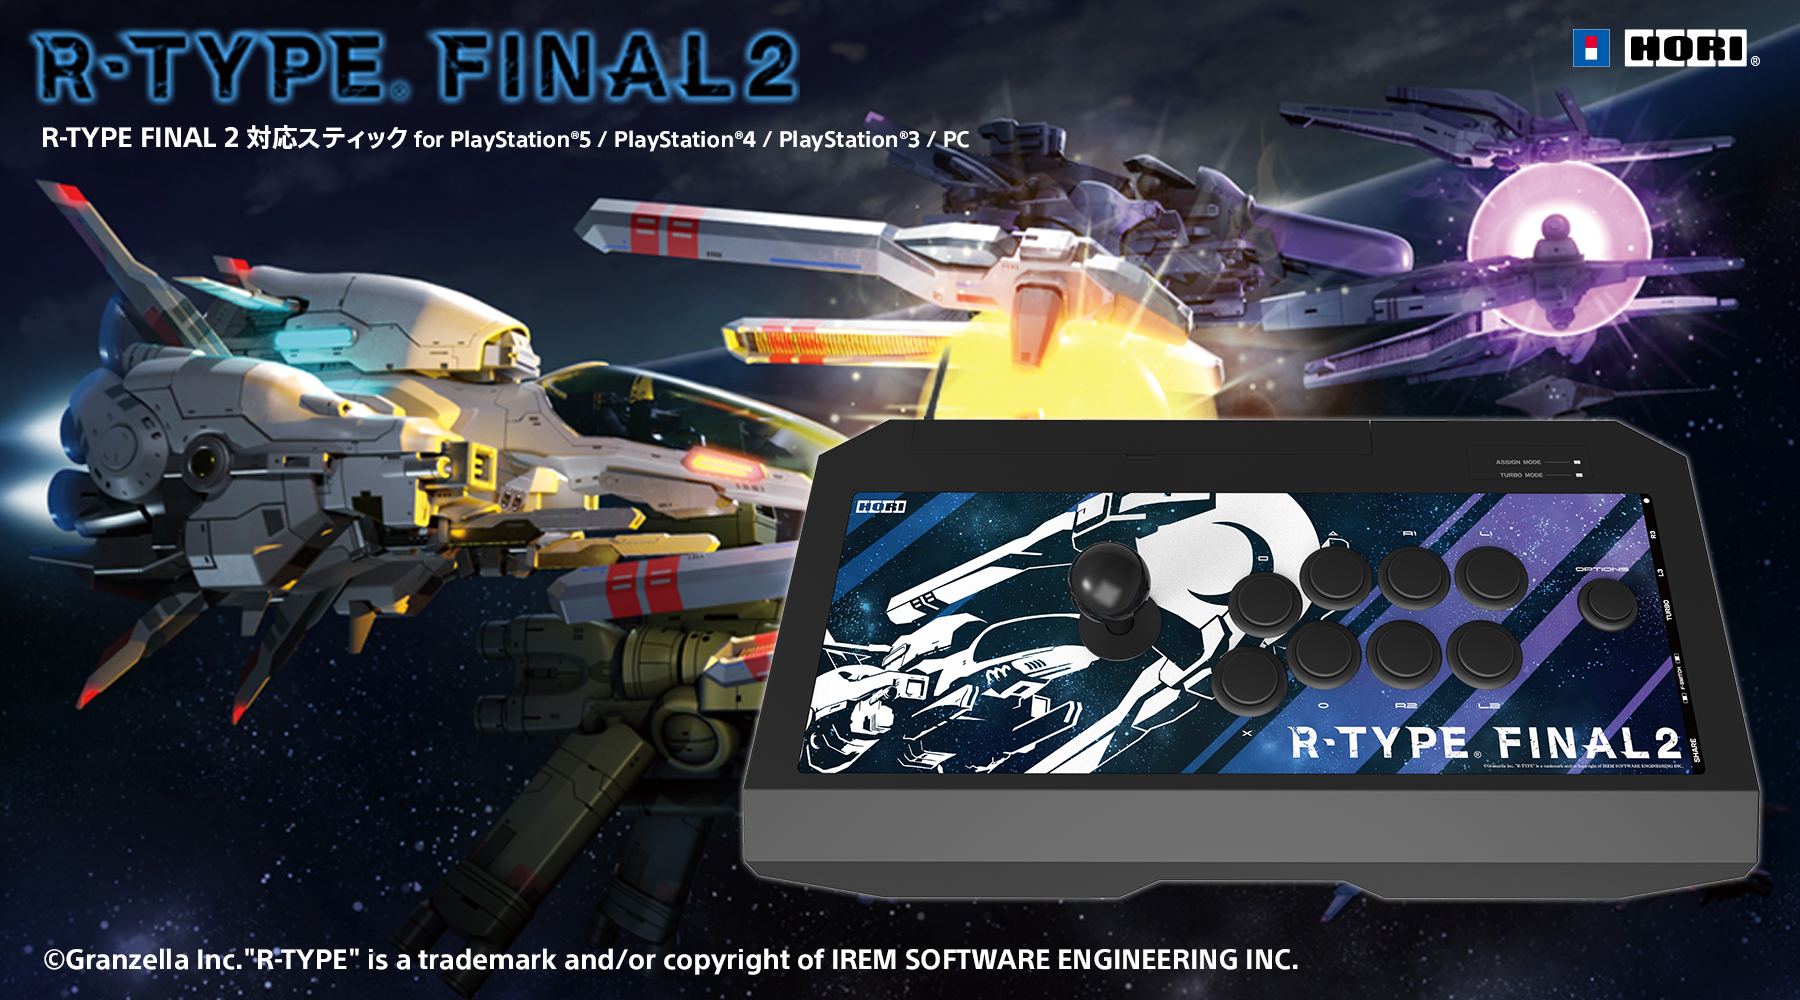 R-TYPE FINAL 2 対応スティック for PlayStation®5 / PlayStation®4 / PlayStation®3 / PC が登場!